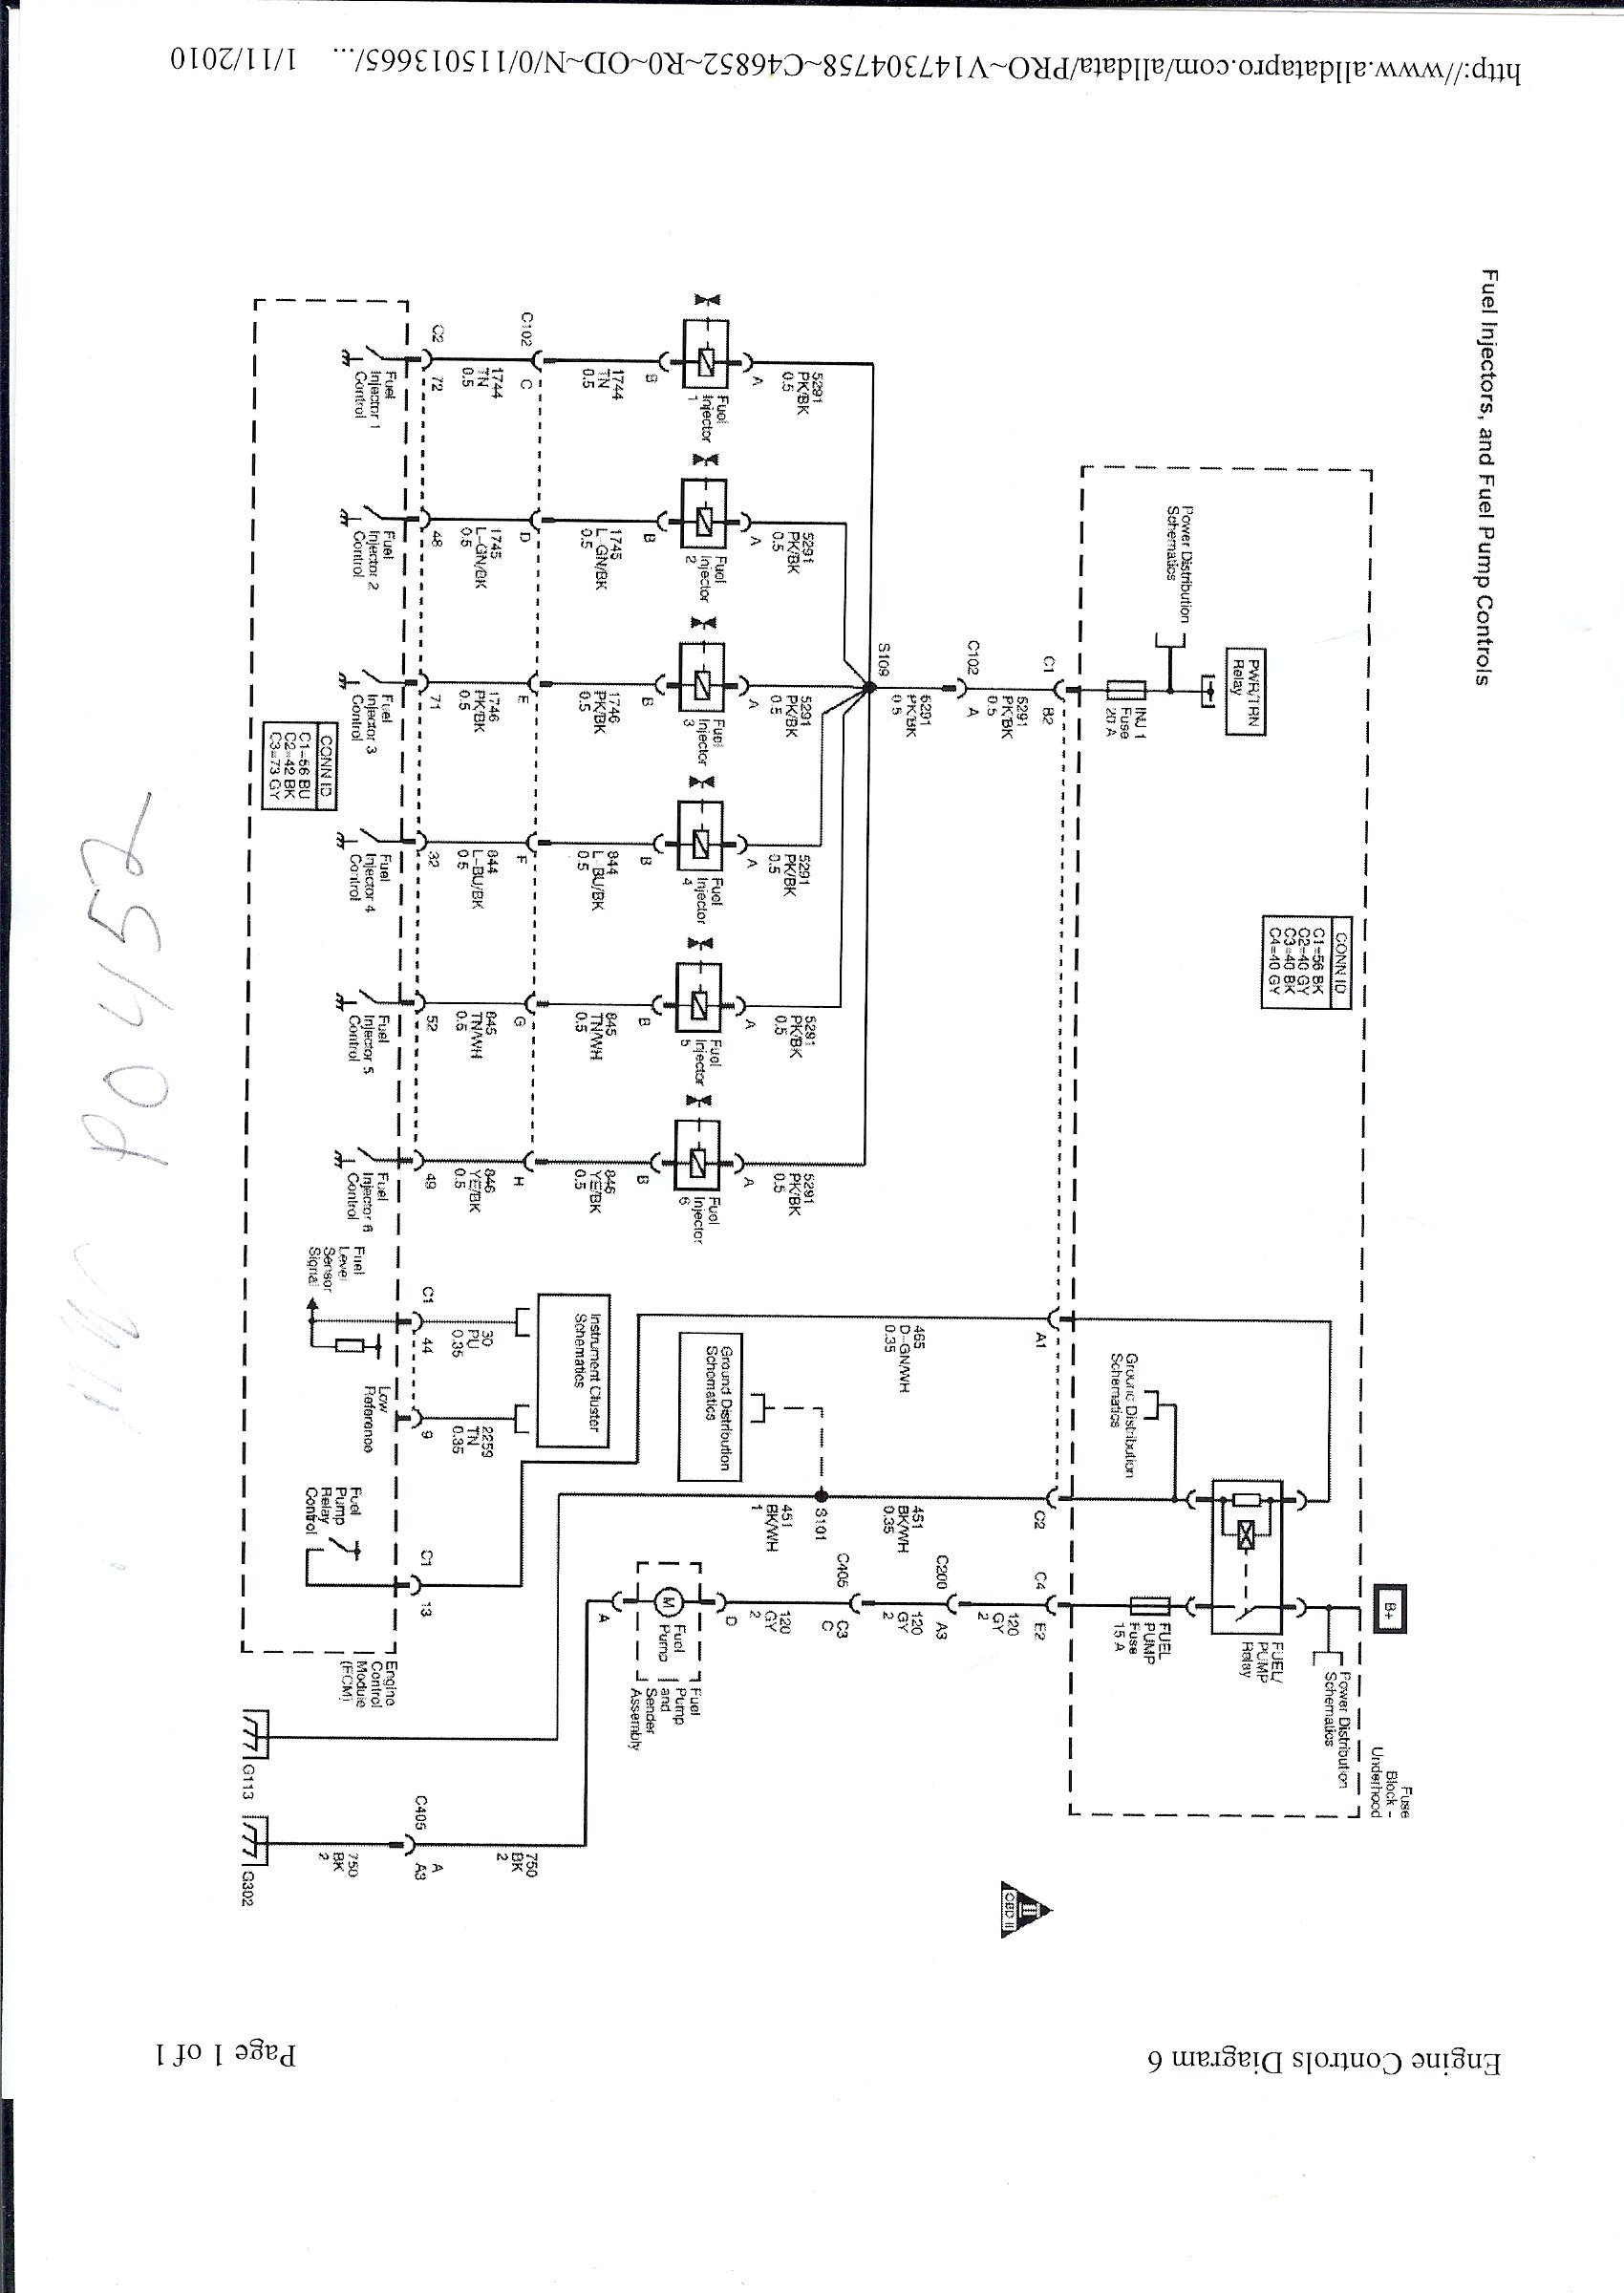 2010 Chevrolet Impala Wiring Diagram Electrical Wiring Diagrams 2006 Chevy  Impala Temp Sensor Wiring Harness 2006 Chevy Impala Wiring Harness